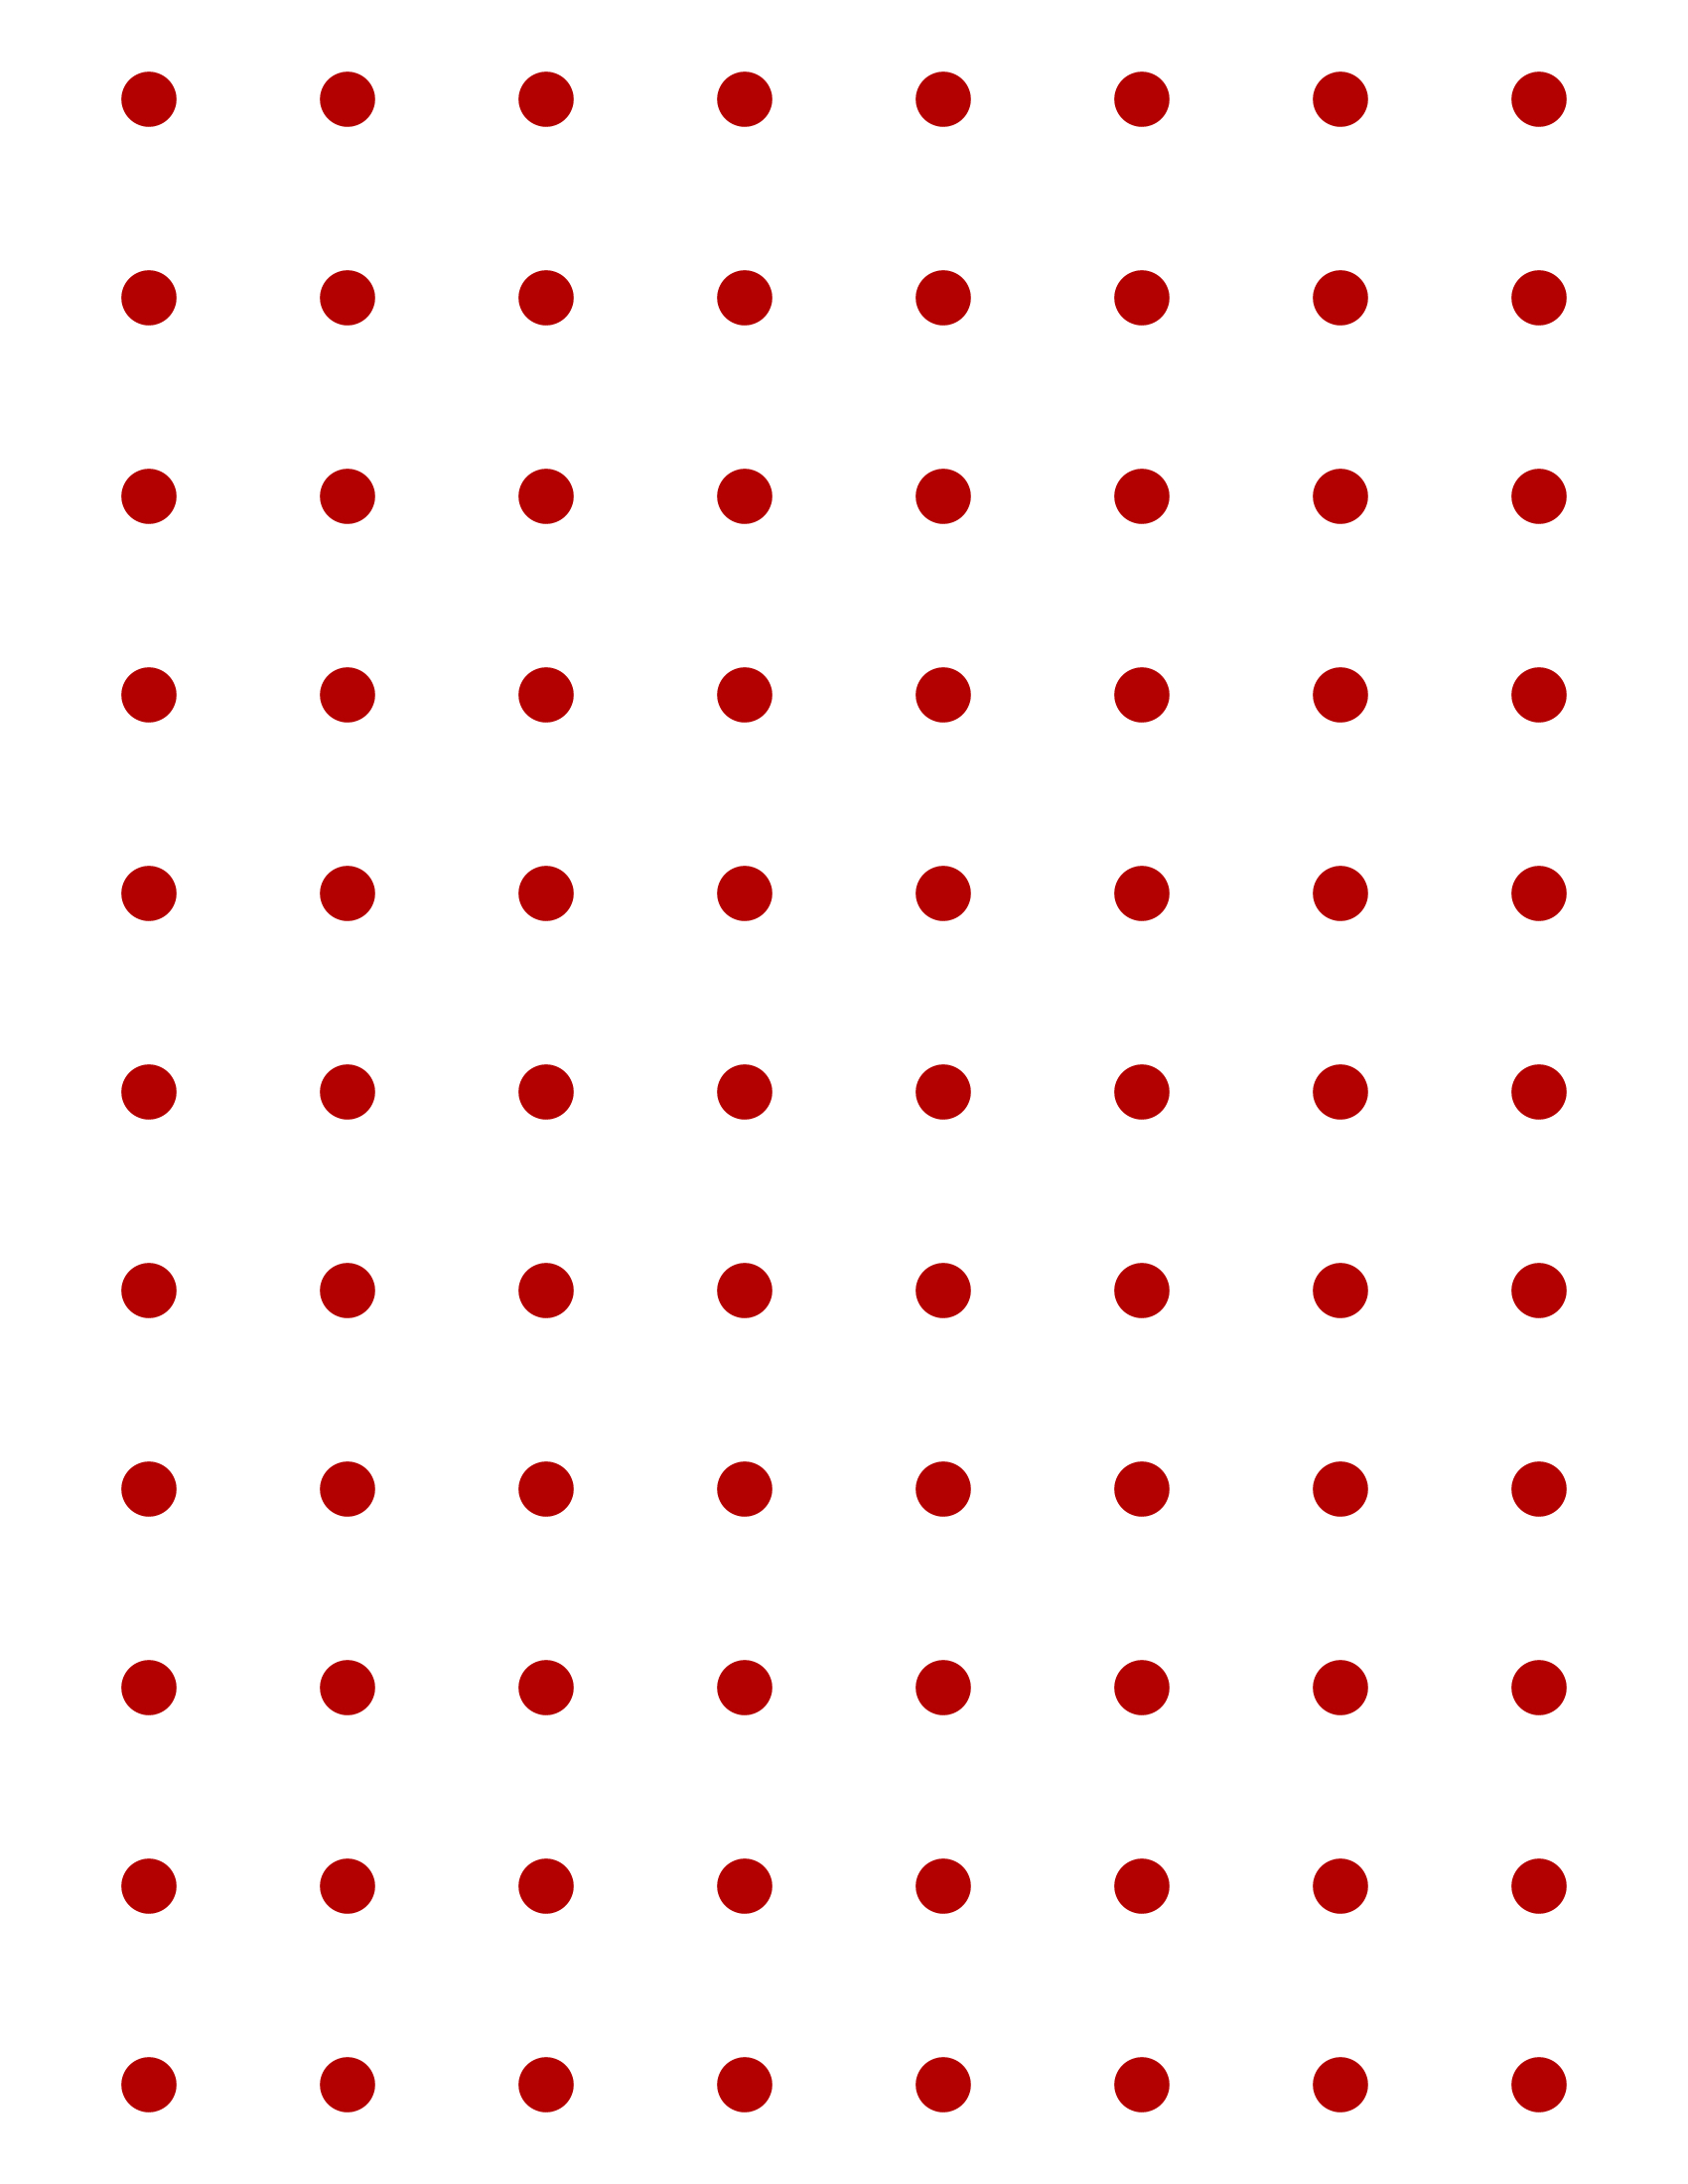 Free Online Graph Paper / Square Dots - Free Printable Square Dot Paper